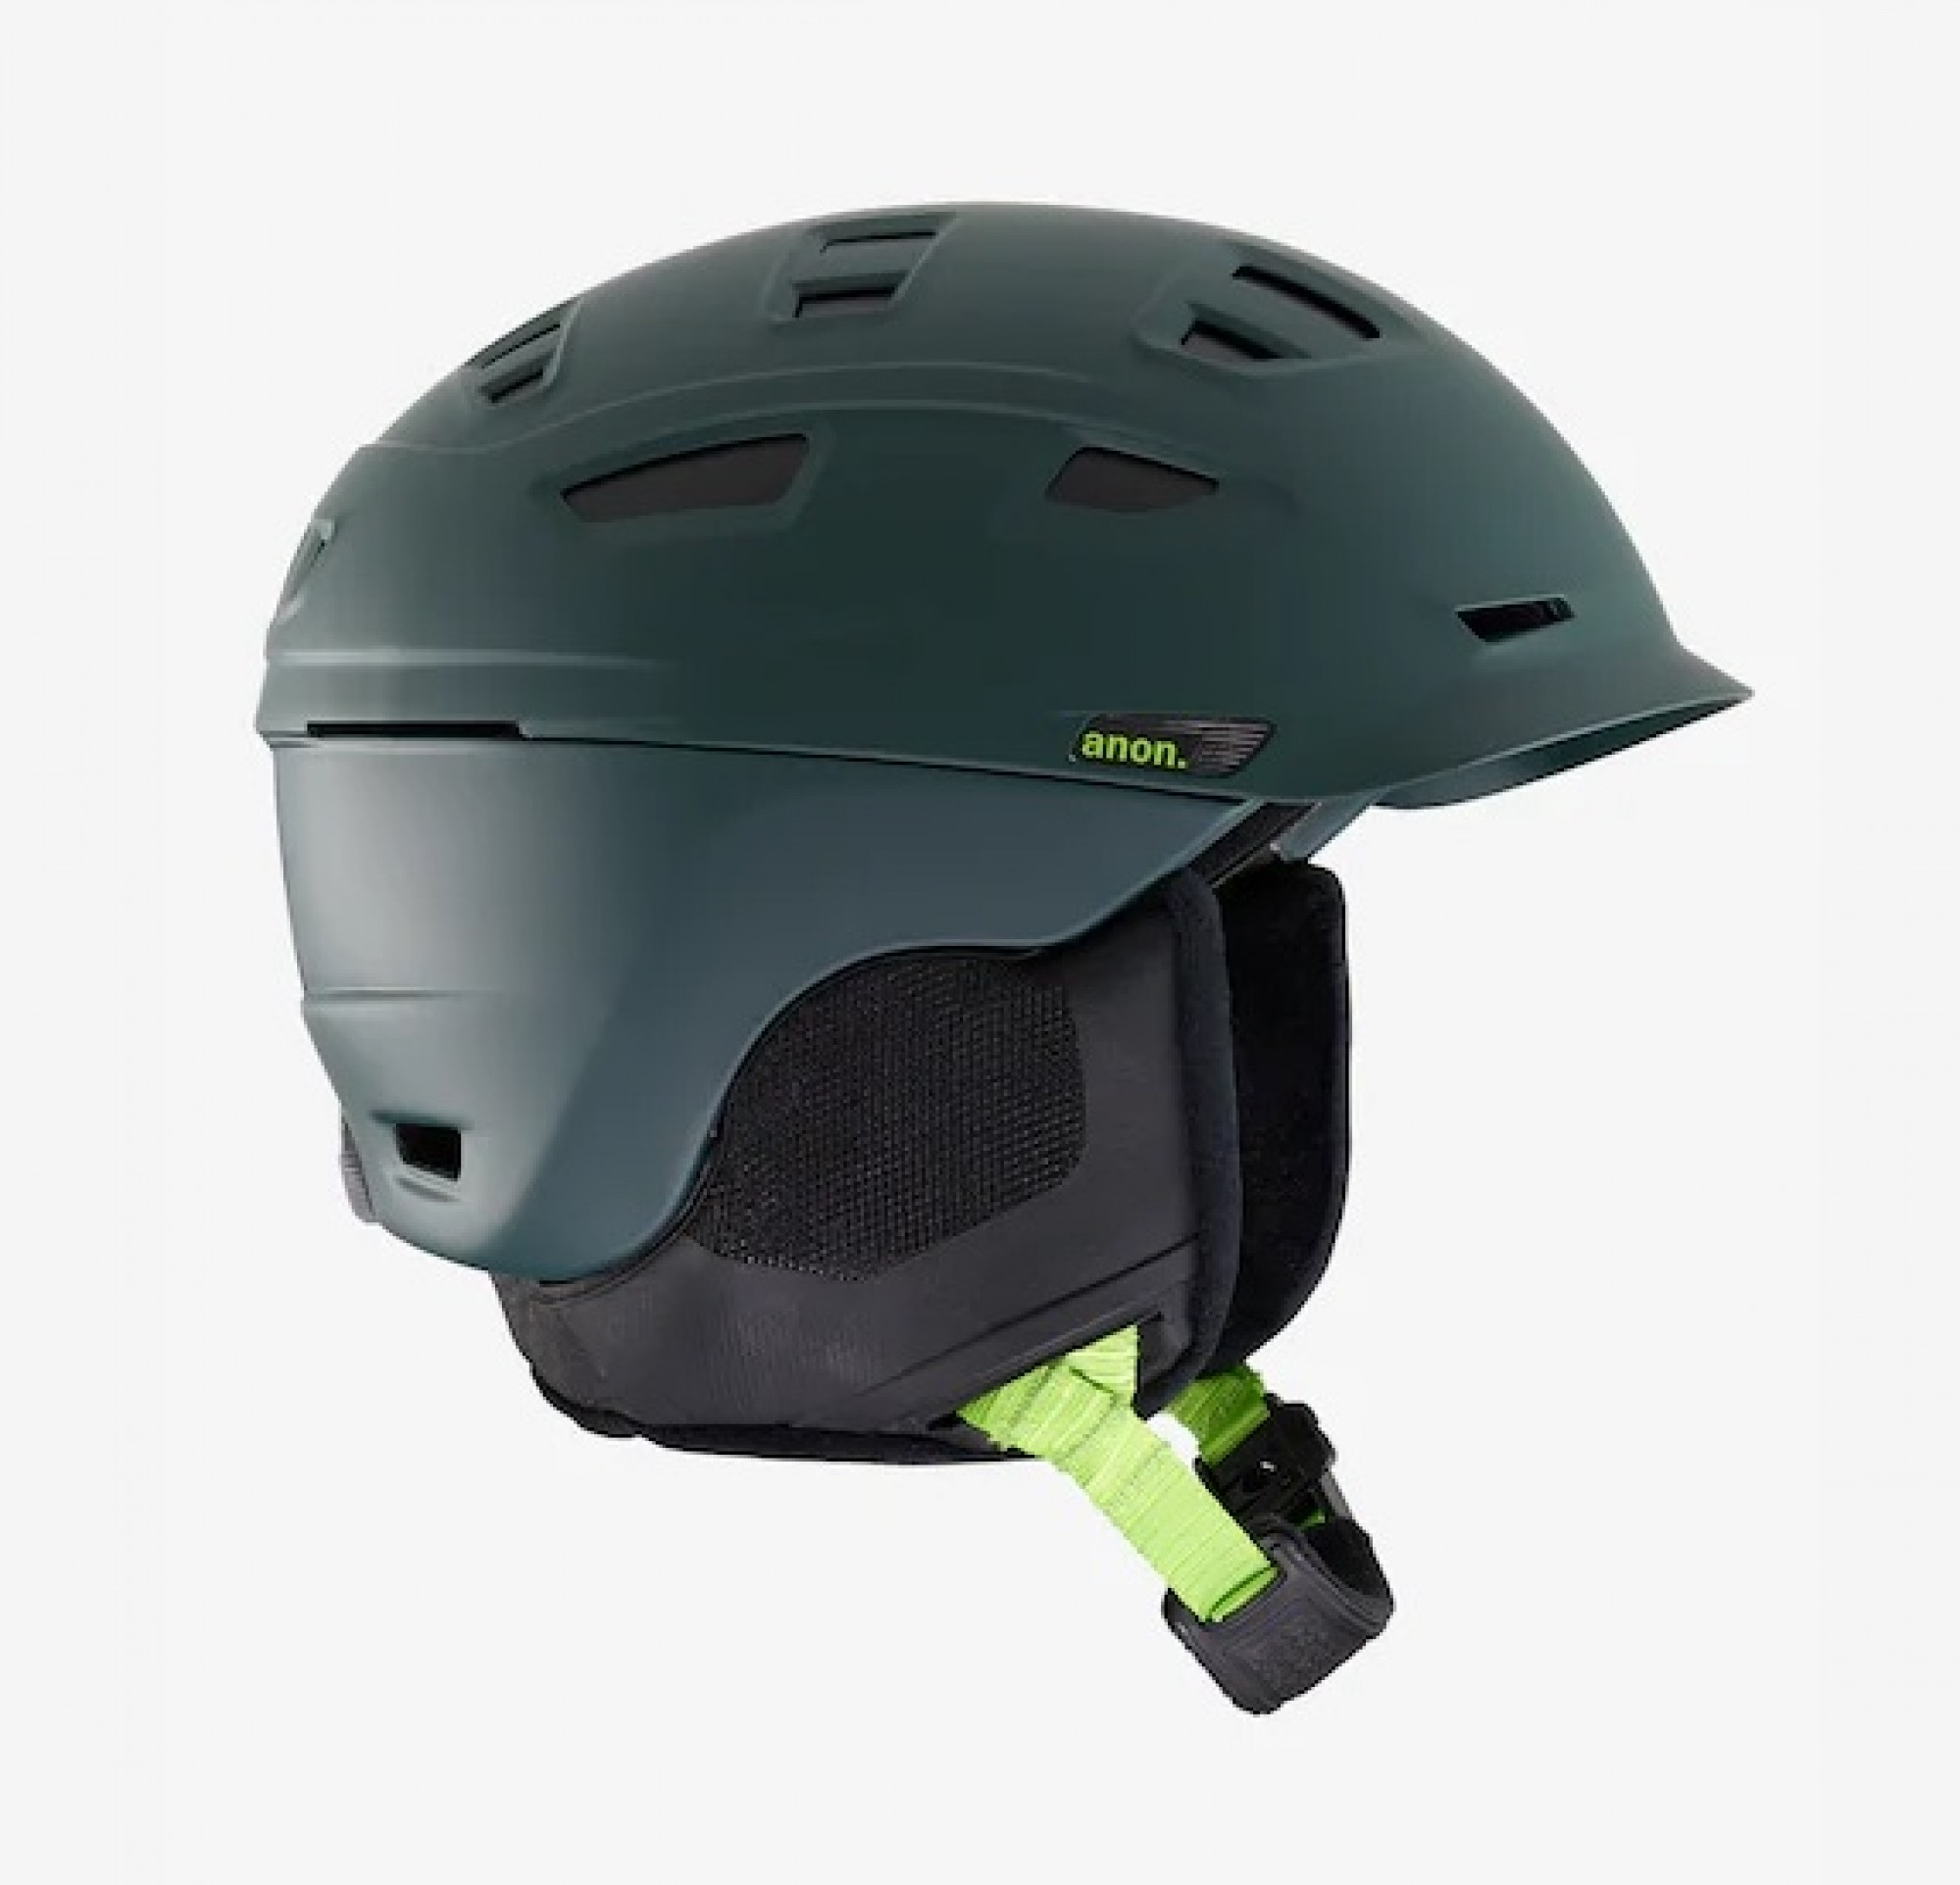 Kask Anon Prime MIPS Green